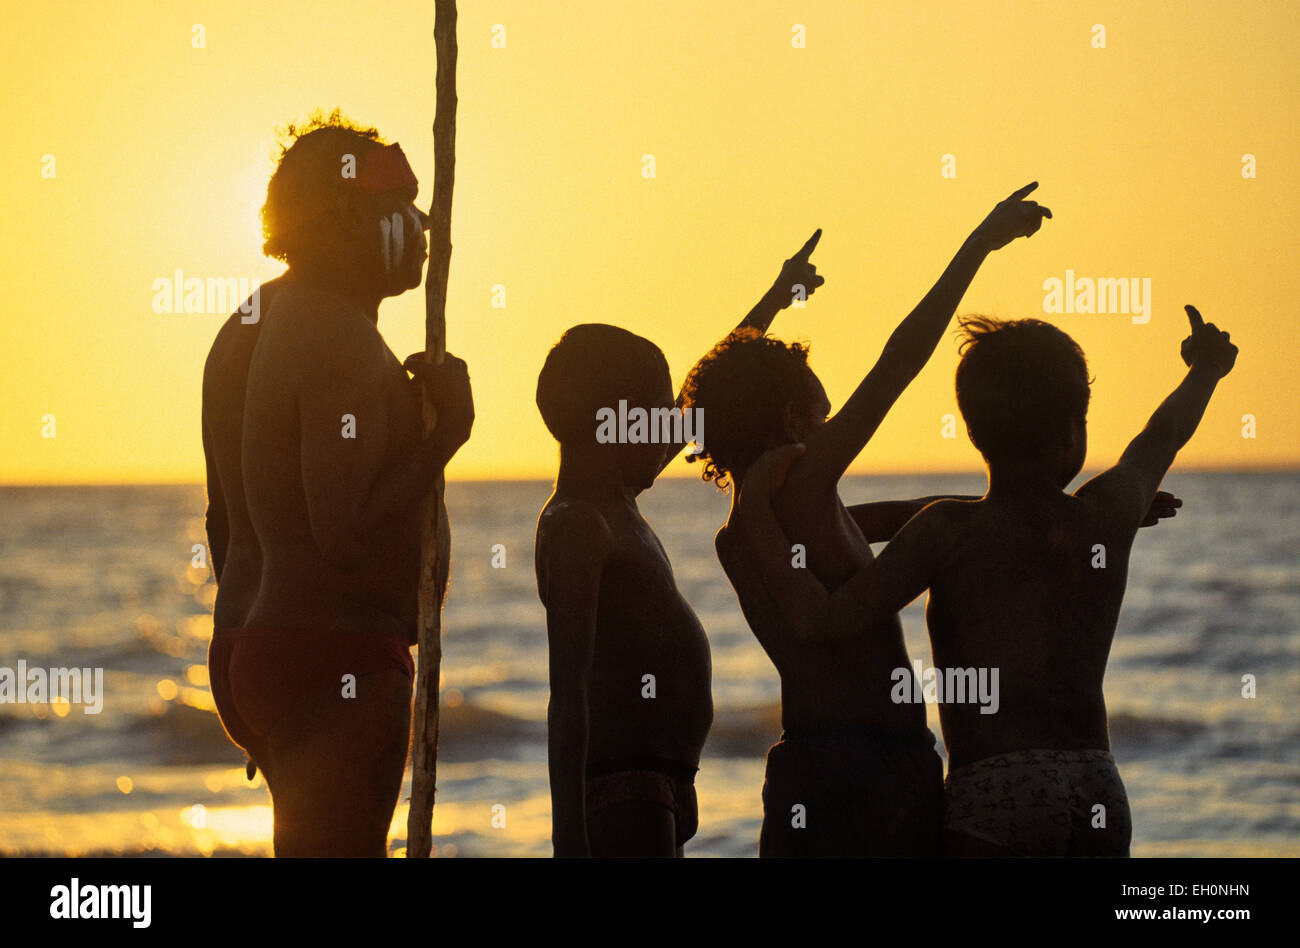 Aboriginal with a pole and children pointing at the sky at sunset, Darwin, Australia - Stock Image